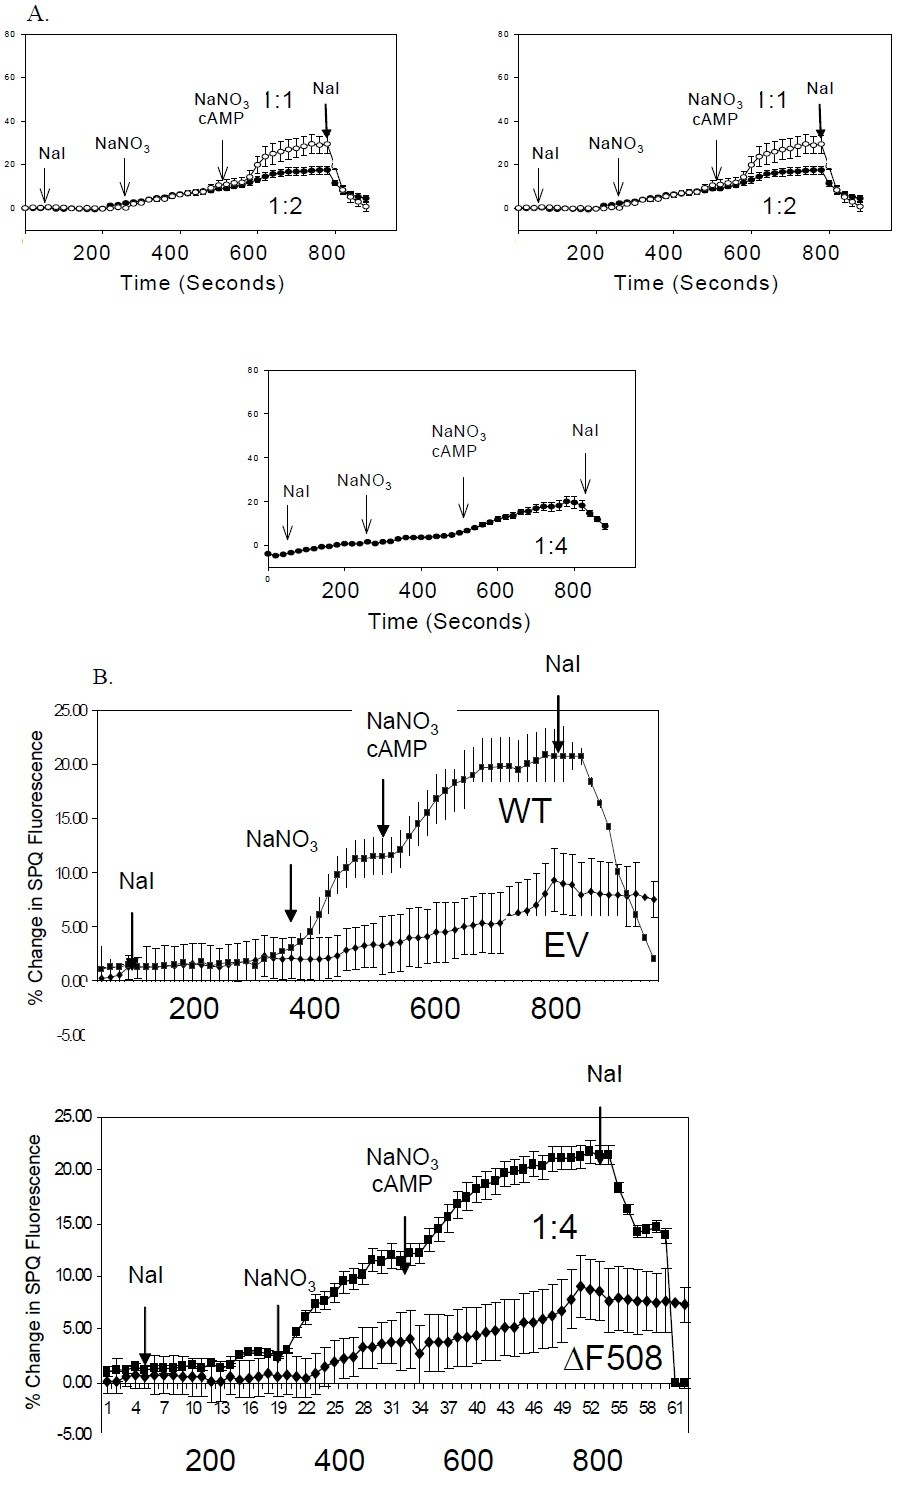 https://static-content.springer.com/image/art%3A10.1186%2F1472-6793-12-12/MediaObjects/12899_2012_Article_196_Fig3_HTML.jpg